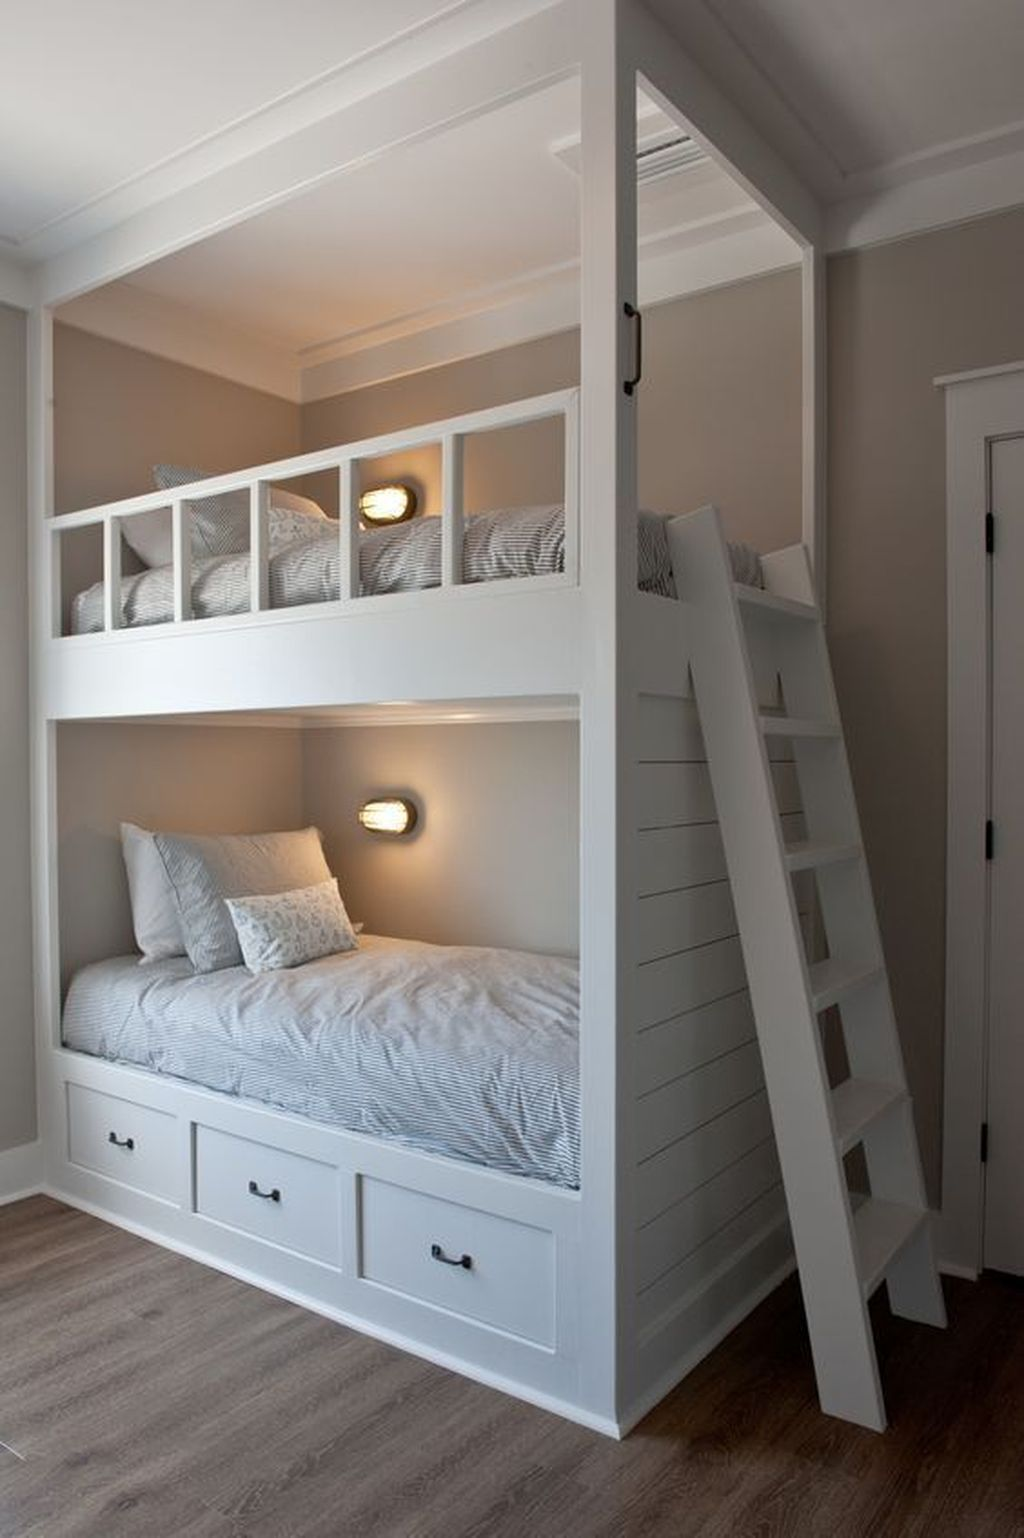 Photo of 38 Unique Boys Bunk Bed Room Design Ideas To Try Asap